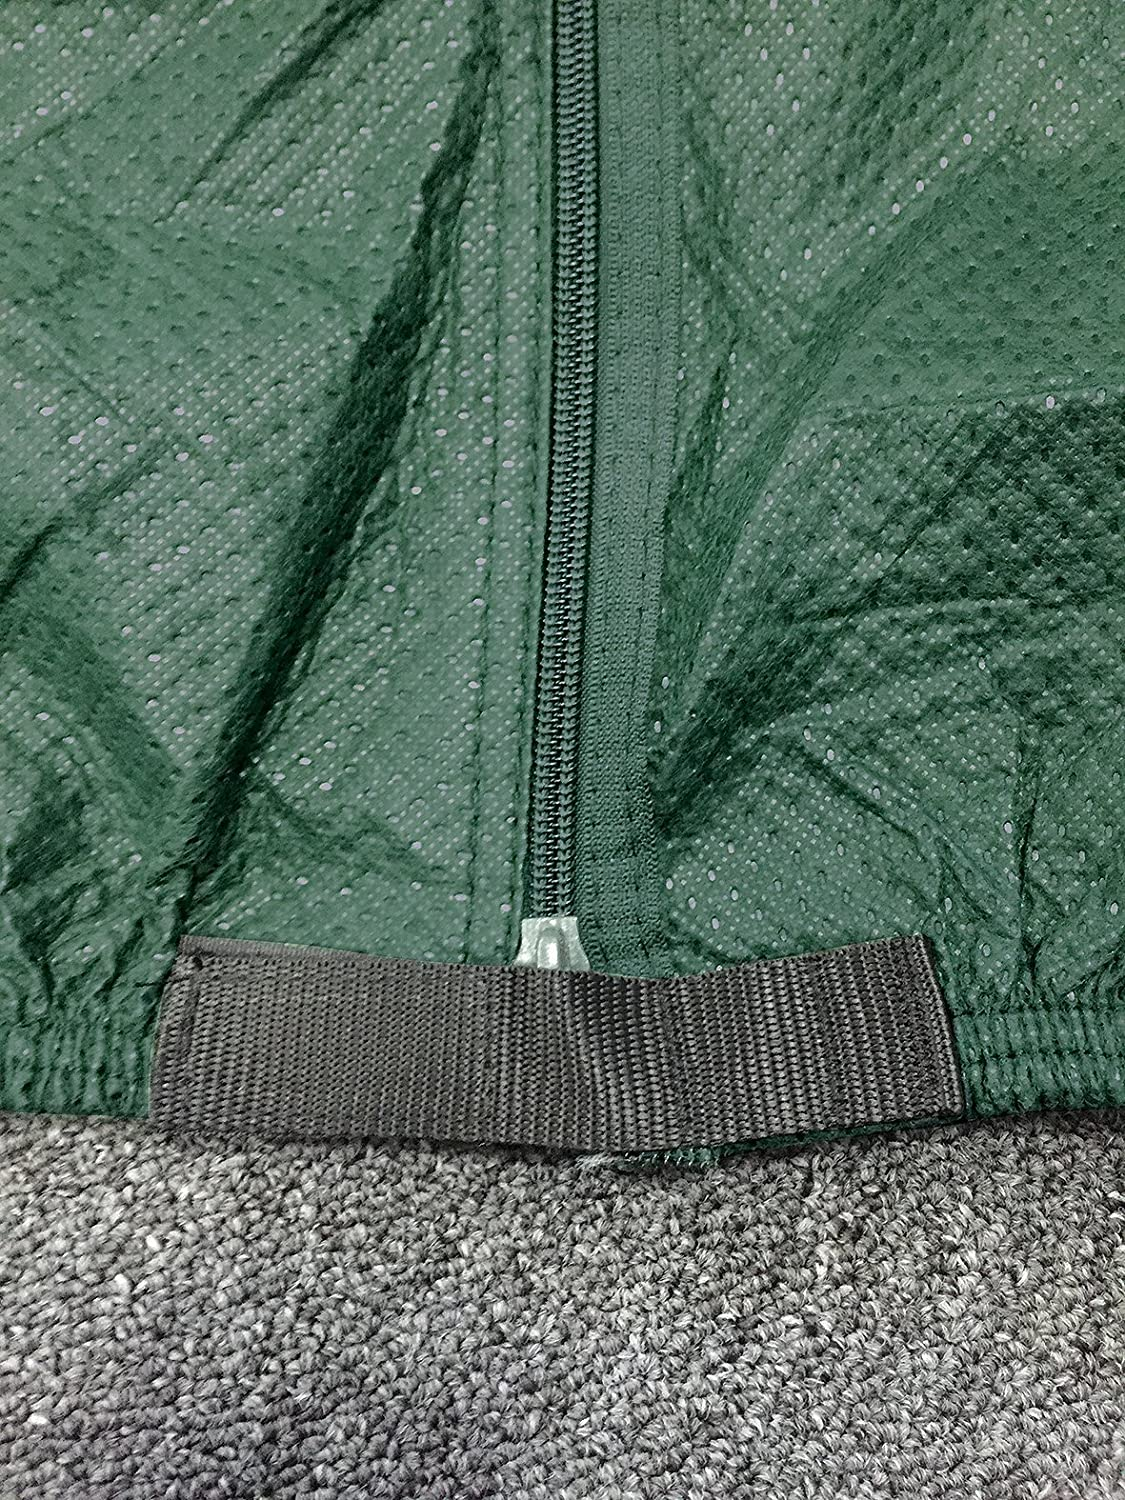 MP Essentials All Season Breathable 4-Ply Green Caravan Covers with Straps 19-21ft Elastic Hem /& Reflectors